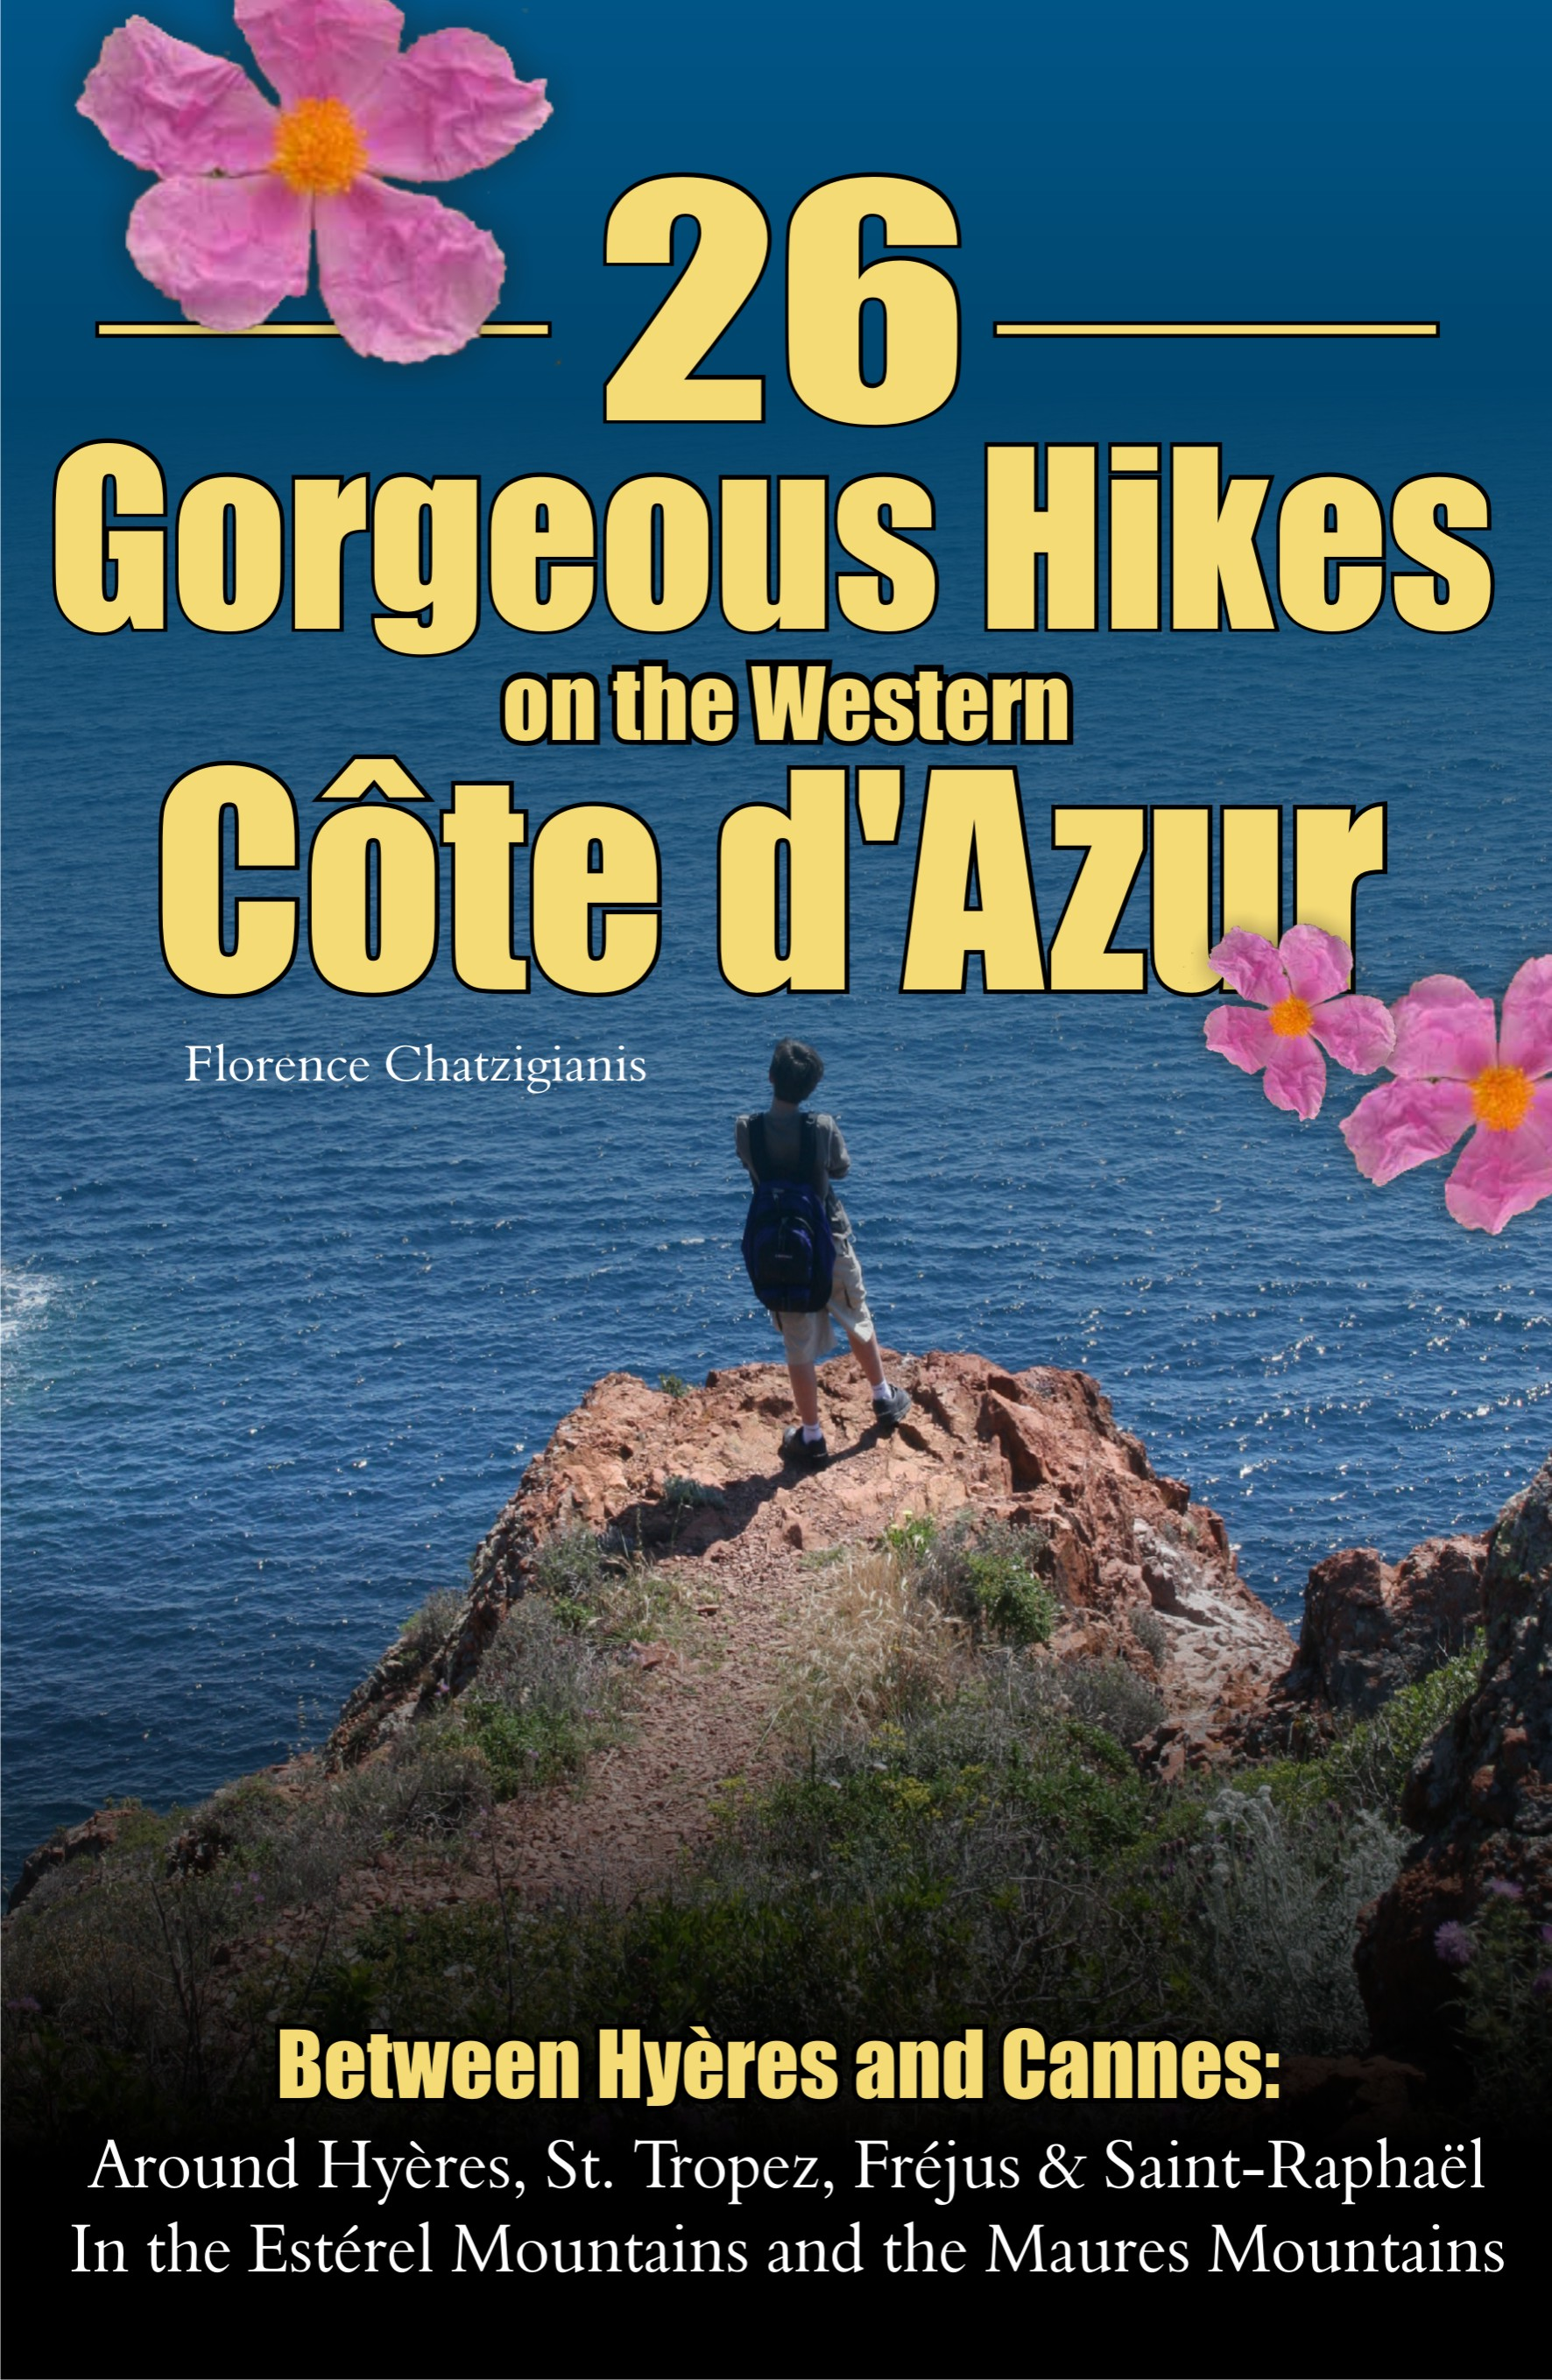 Click to Order Hiking Book